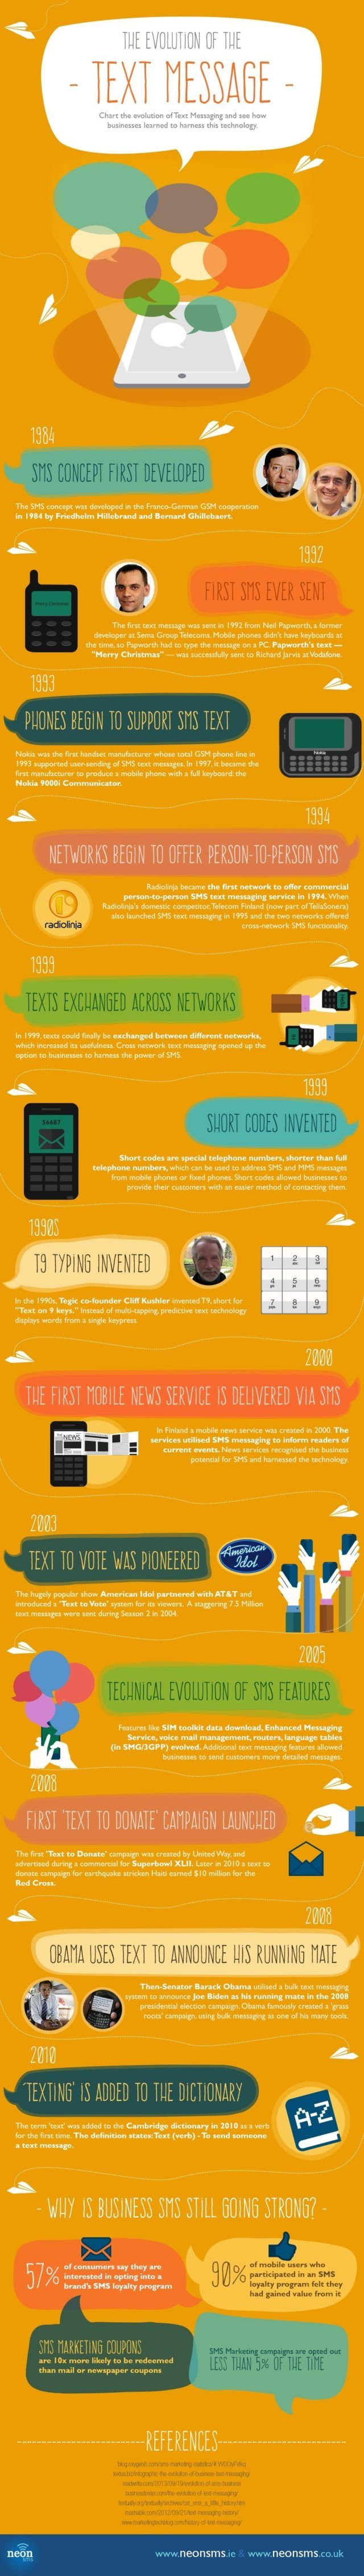 The History of SMS and Text Messaging